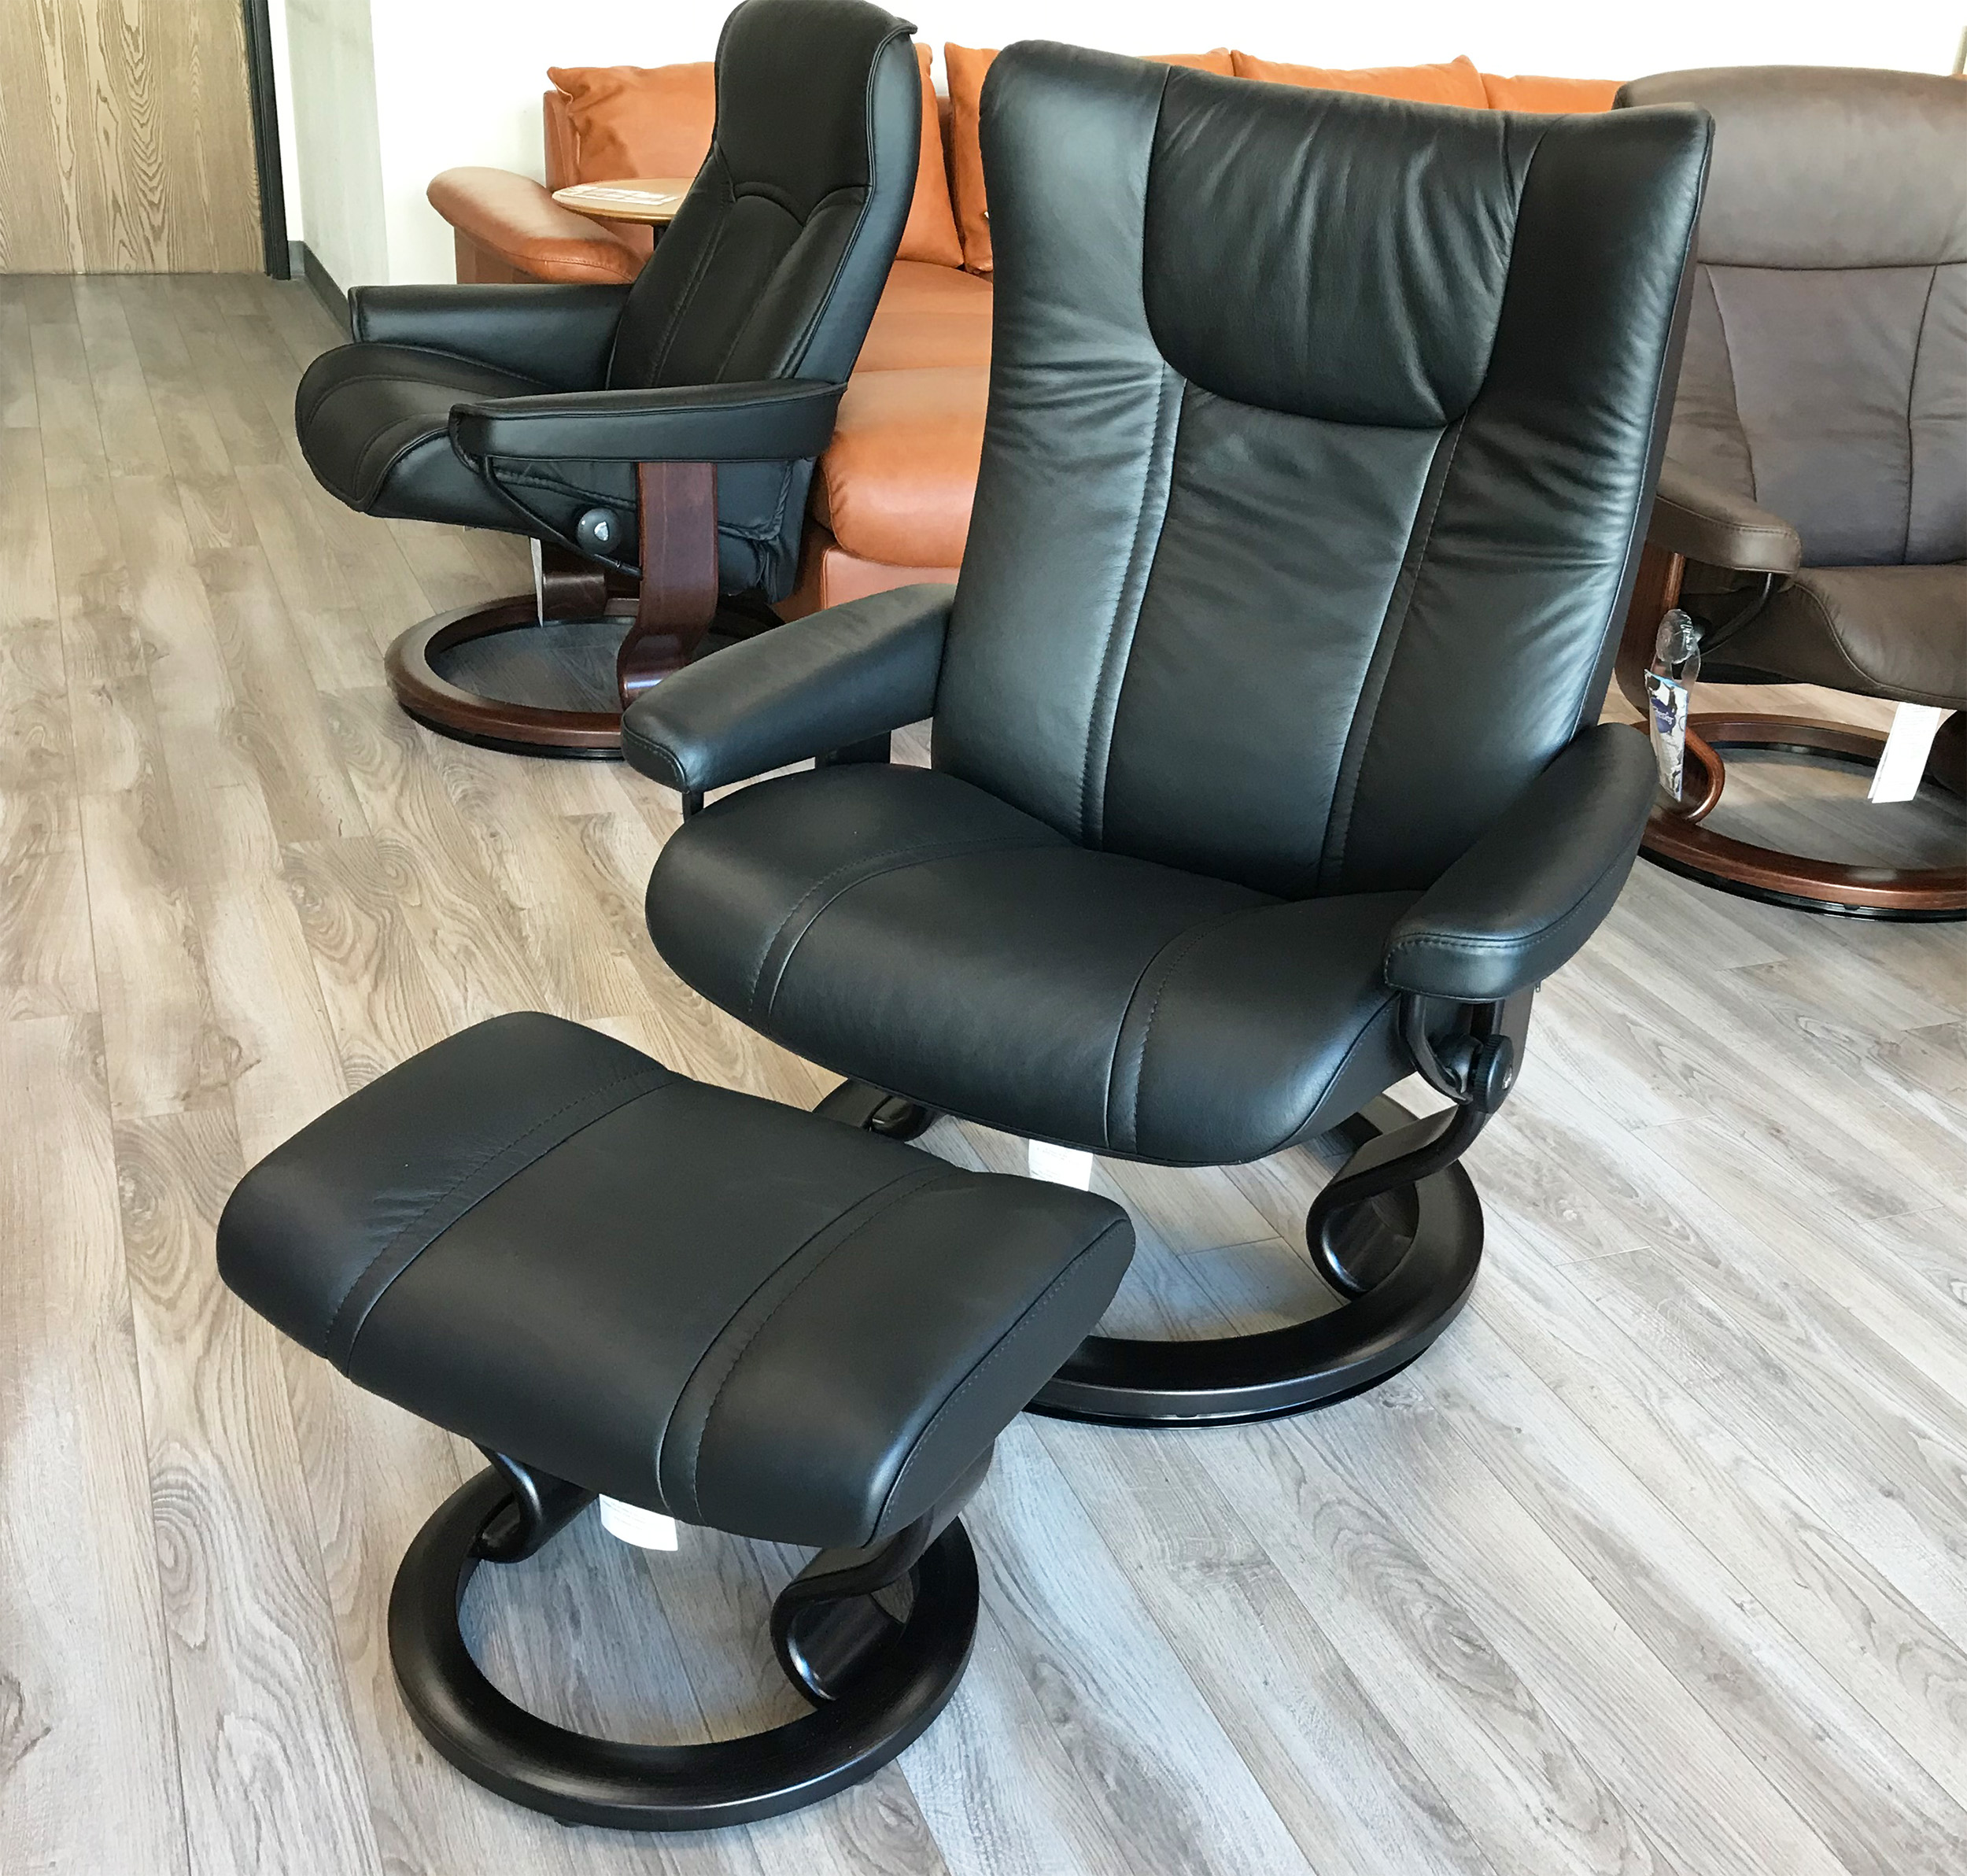 Picture of: Stressless Wing Paloma Black Leather Recliner Chair And Ottoman By Ekornes Stressless Wing Paloma Black Leather Chairs Recliners